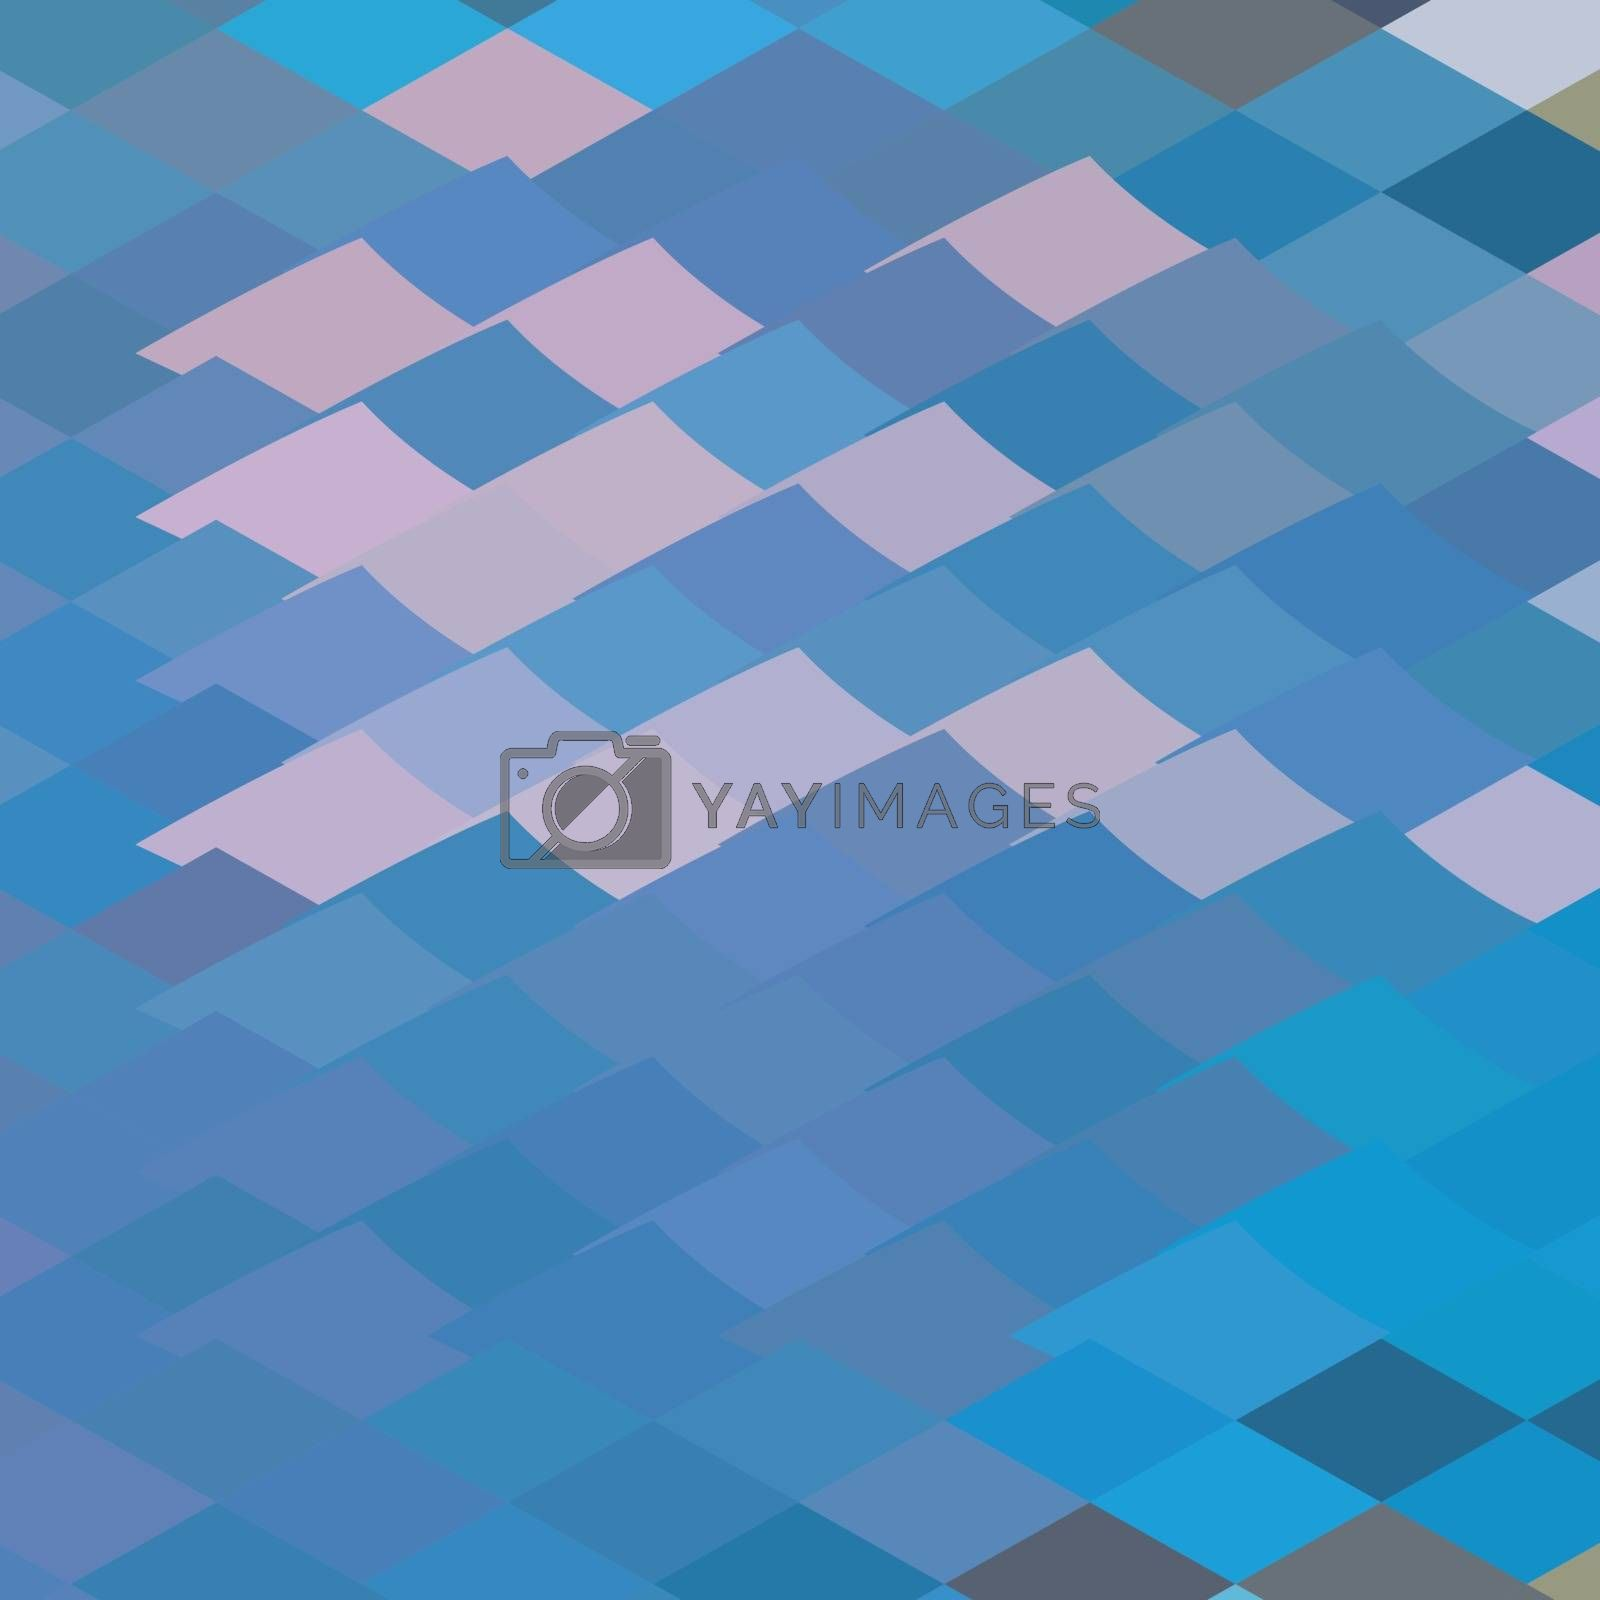 Low polygon style illustration of a tent abstract background.